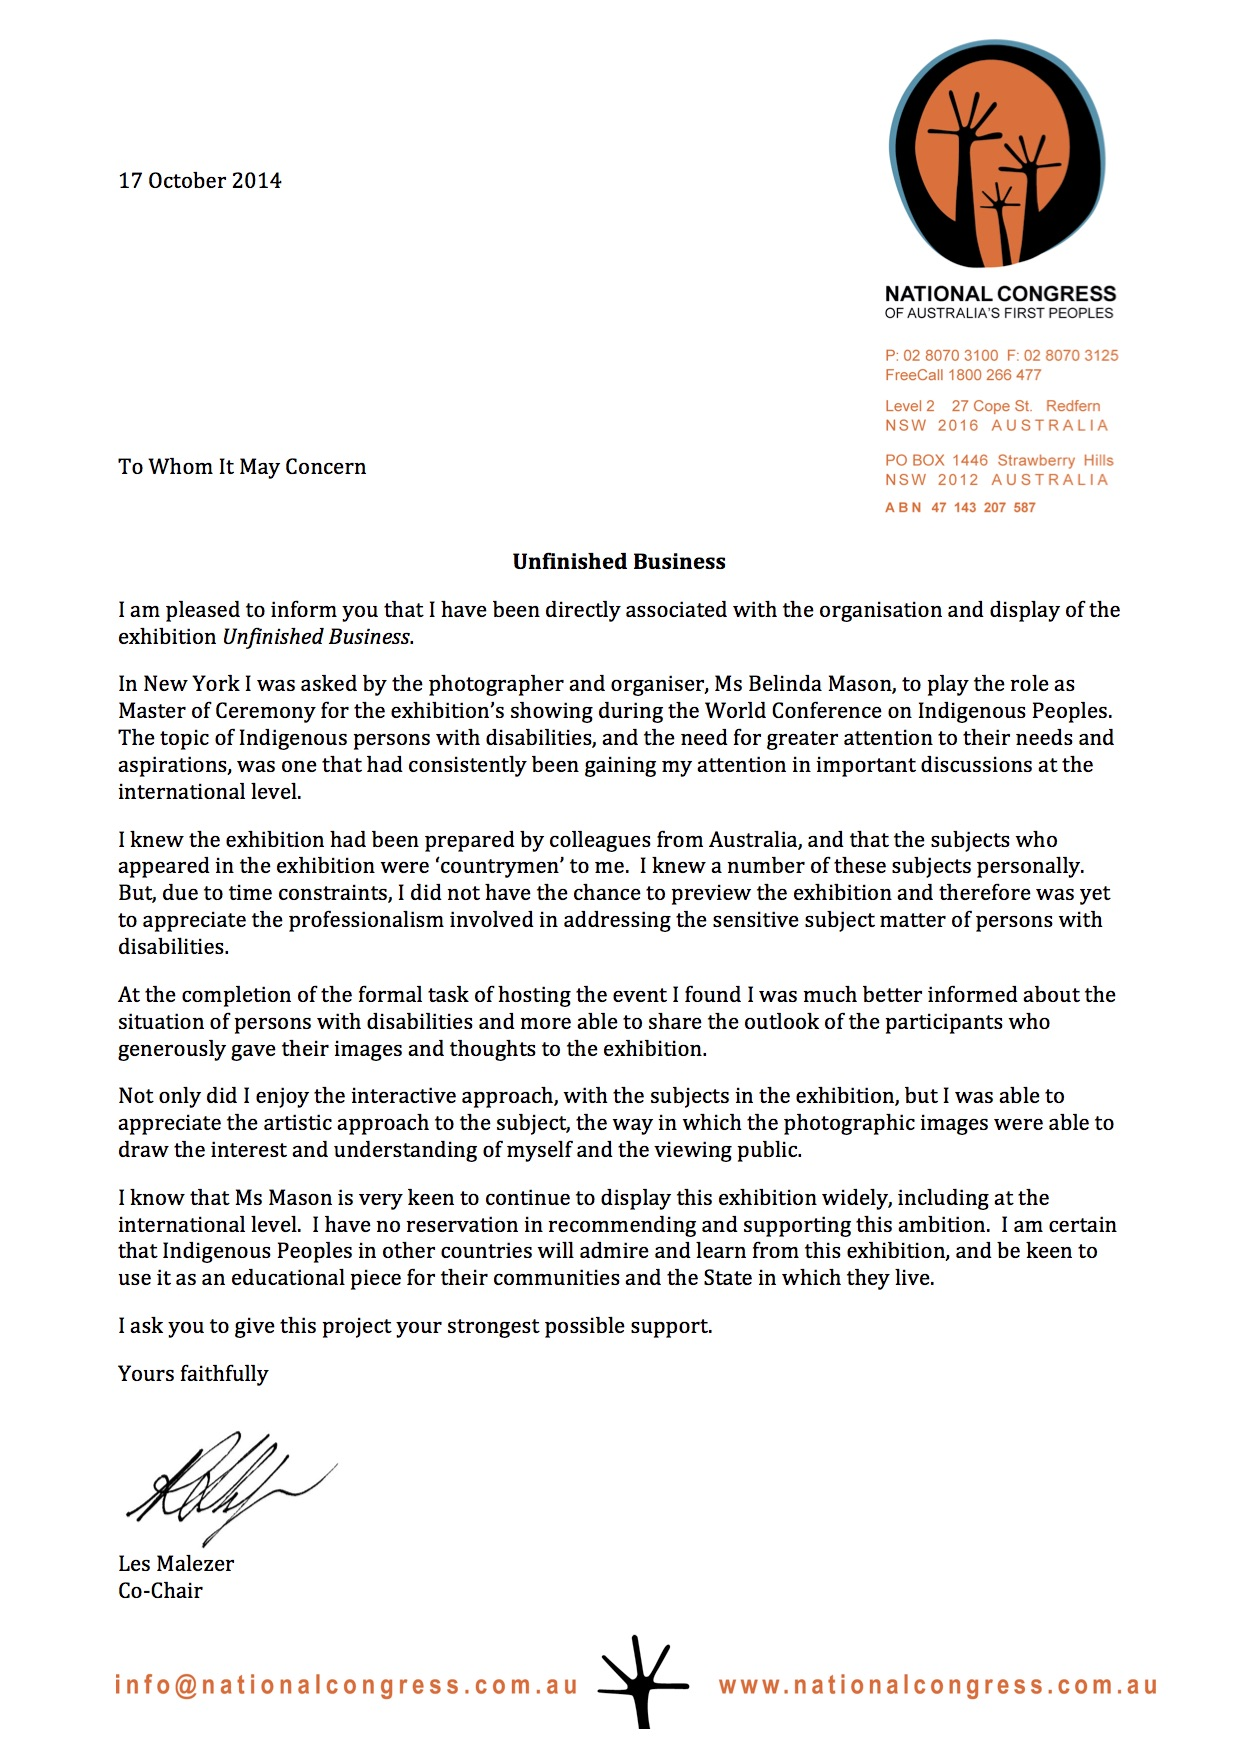 Reference-National-Congress-of-Australias-First-Peoples